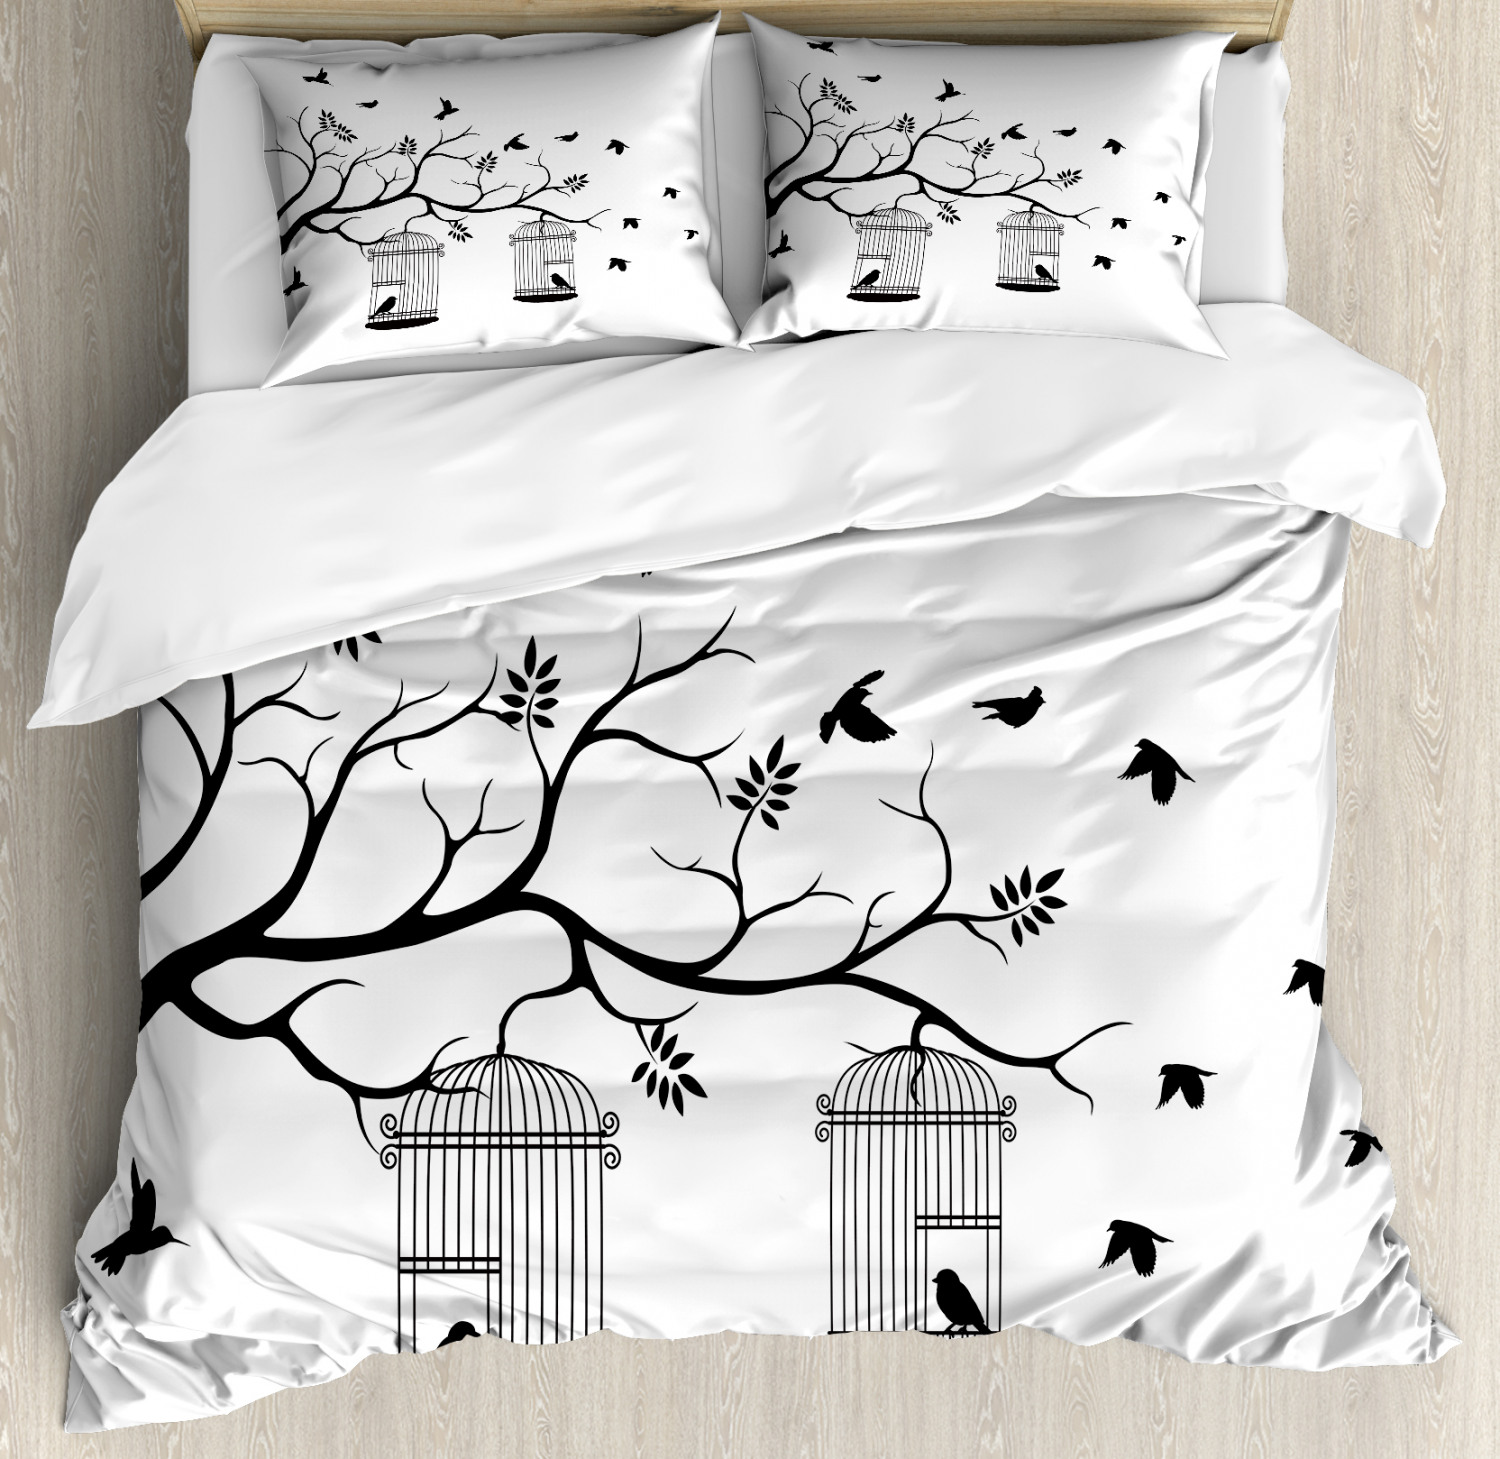 Romantic Duvet Cover Set with Pillow Shams Birds Flying to C